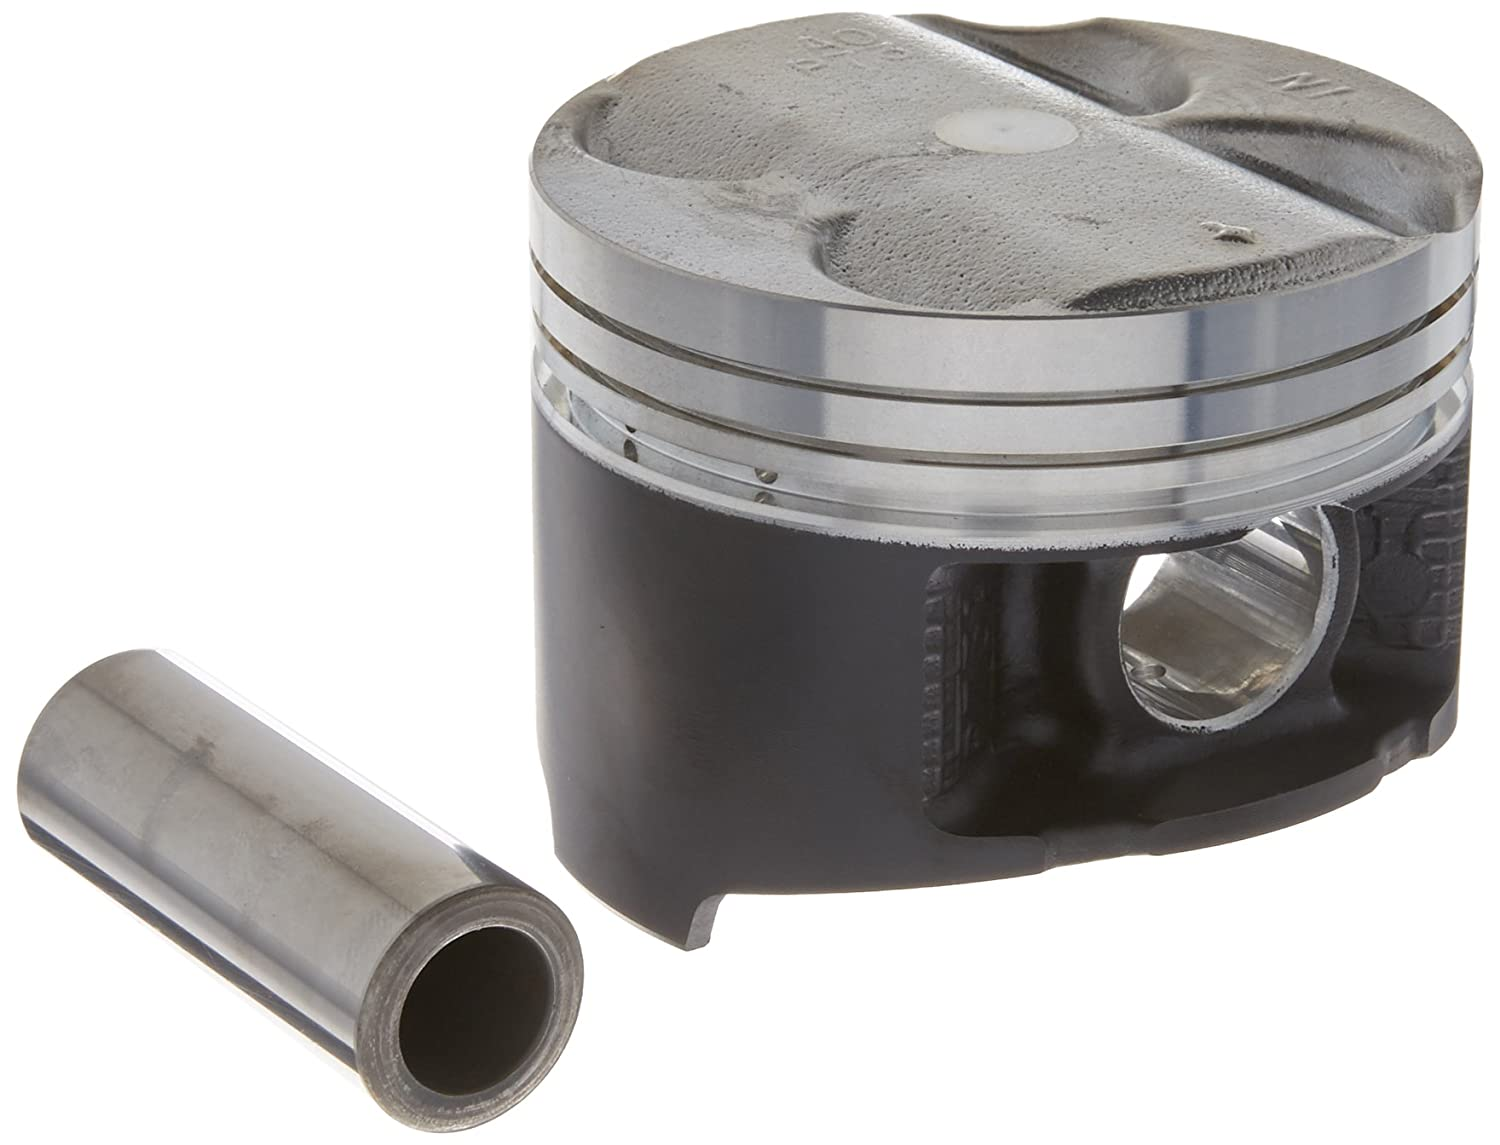 Acura 13010-P73-A00 Engine Piston